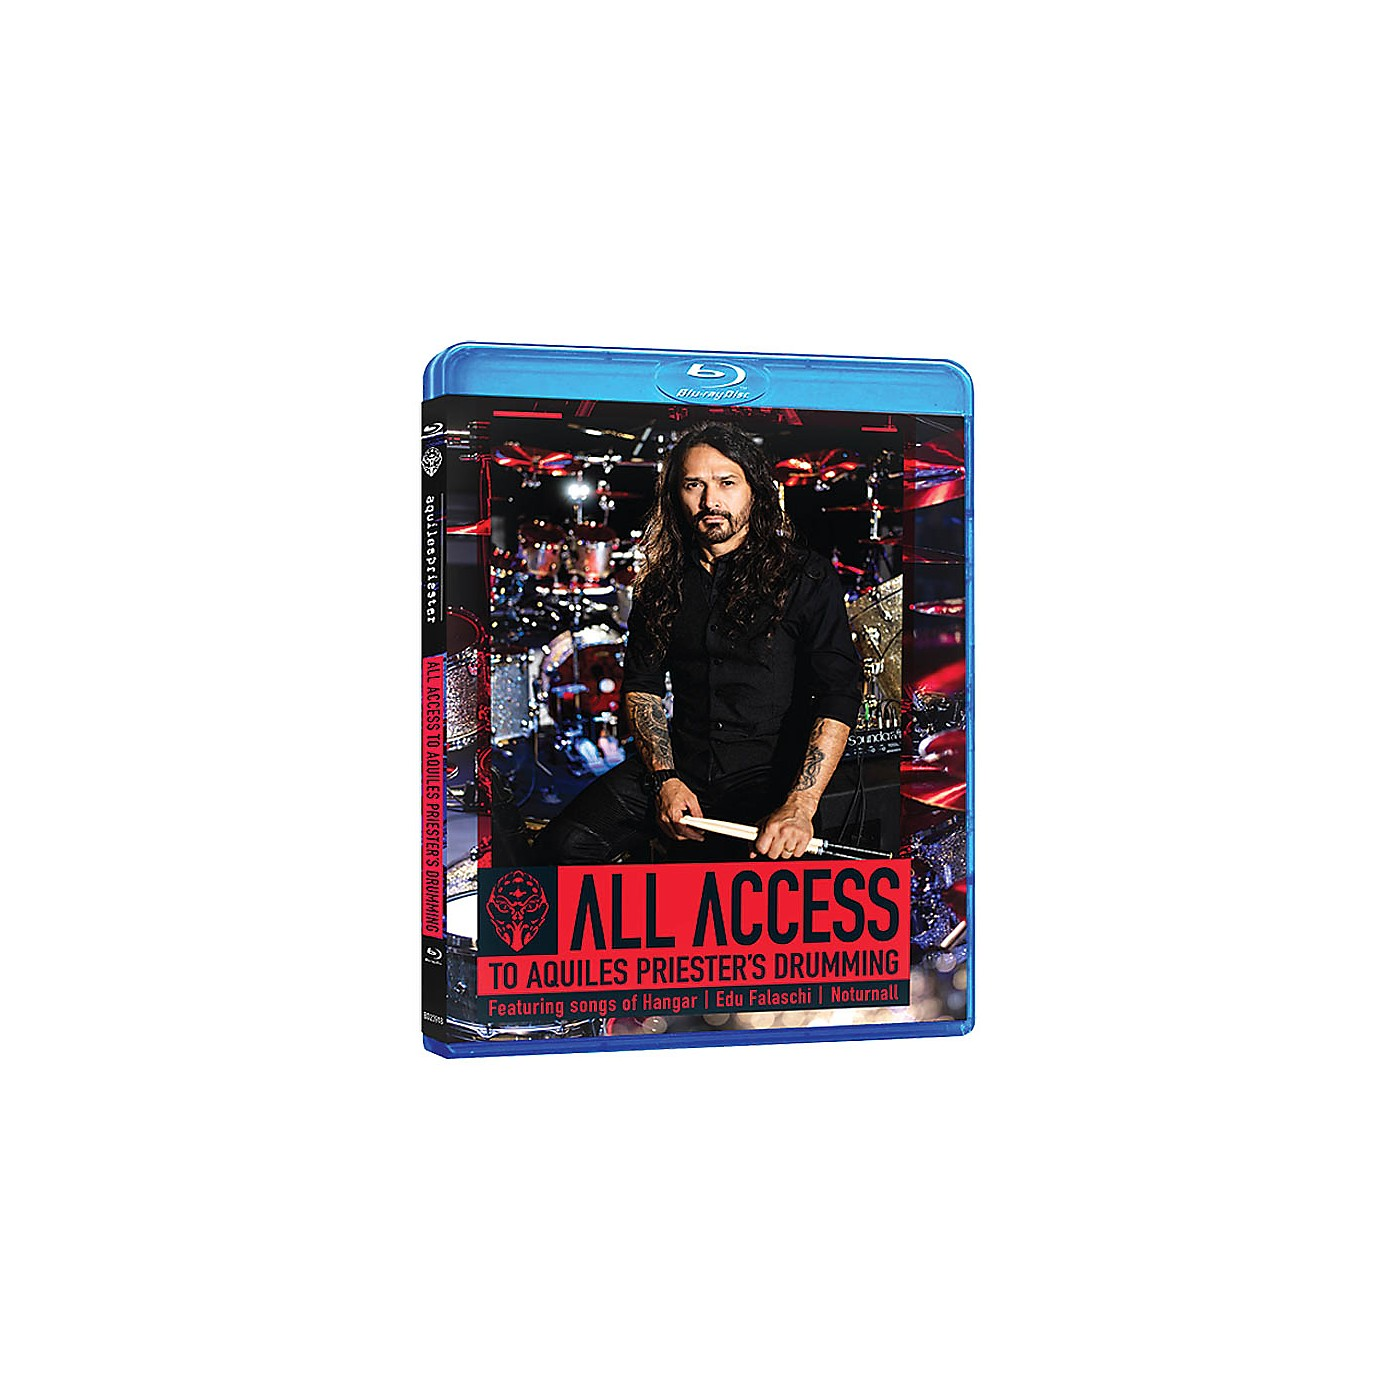 Hudson Music All Access to Aquiles Priester's Drumming Featuring Songs of Hangar, Edu Falaschi, Noturnall Blu-Ray thumbnail